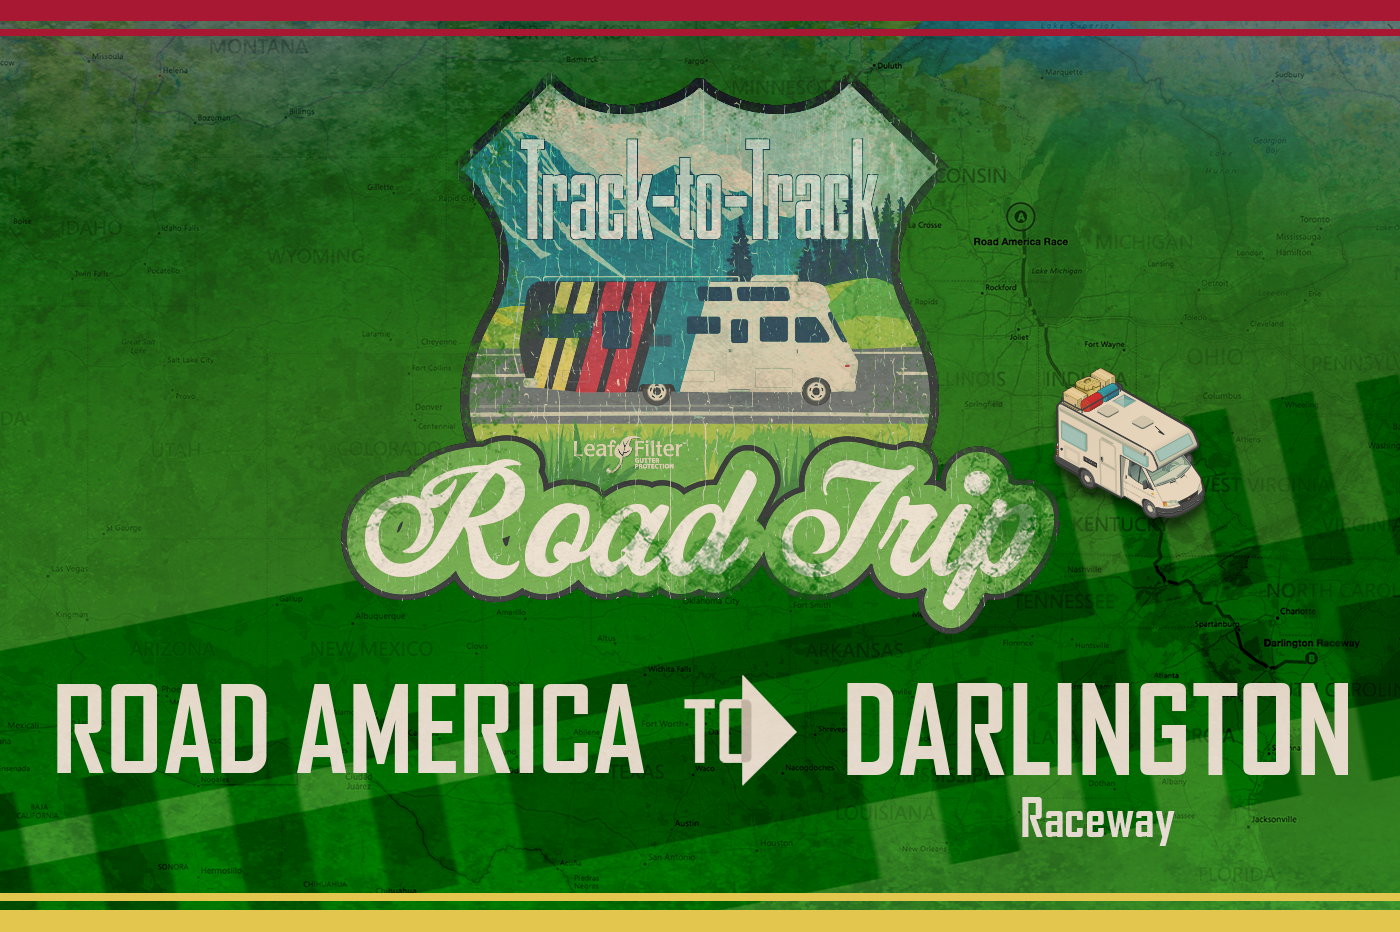 Track-to-Track Road Trip Part 10: Wisconsin to South Carolina